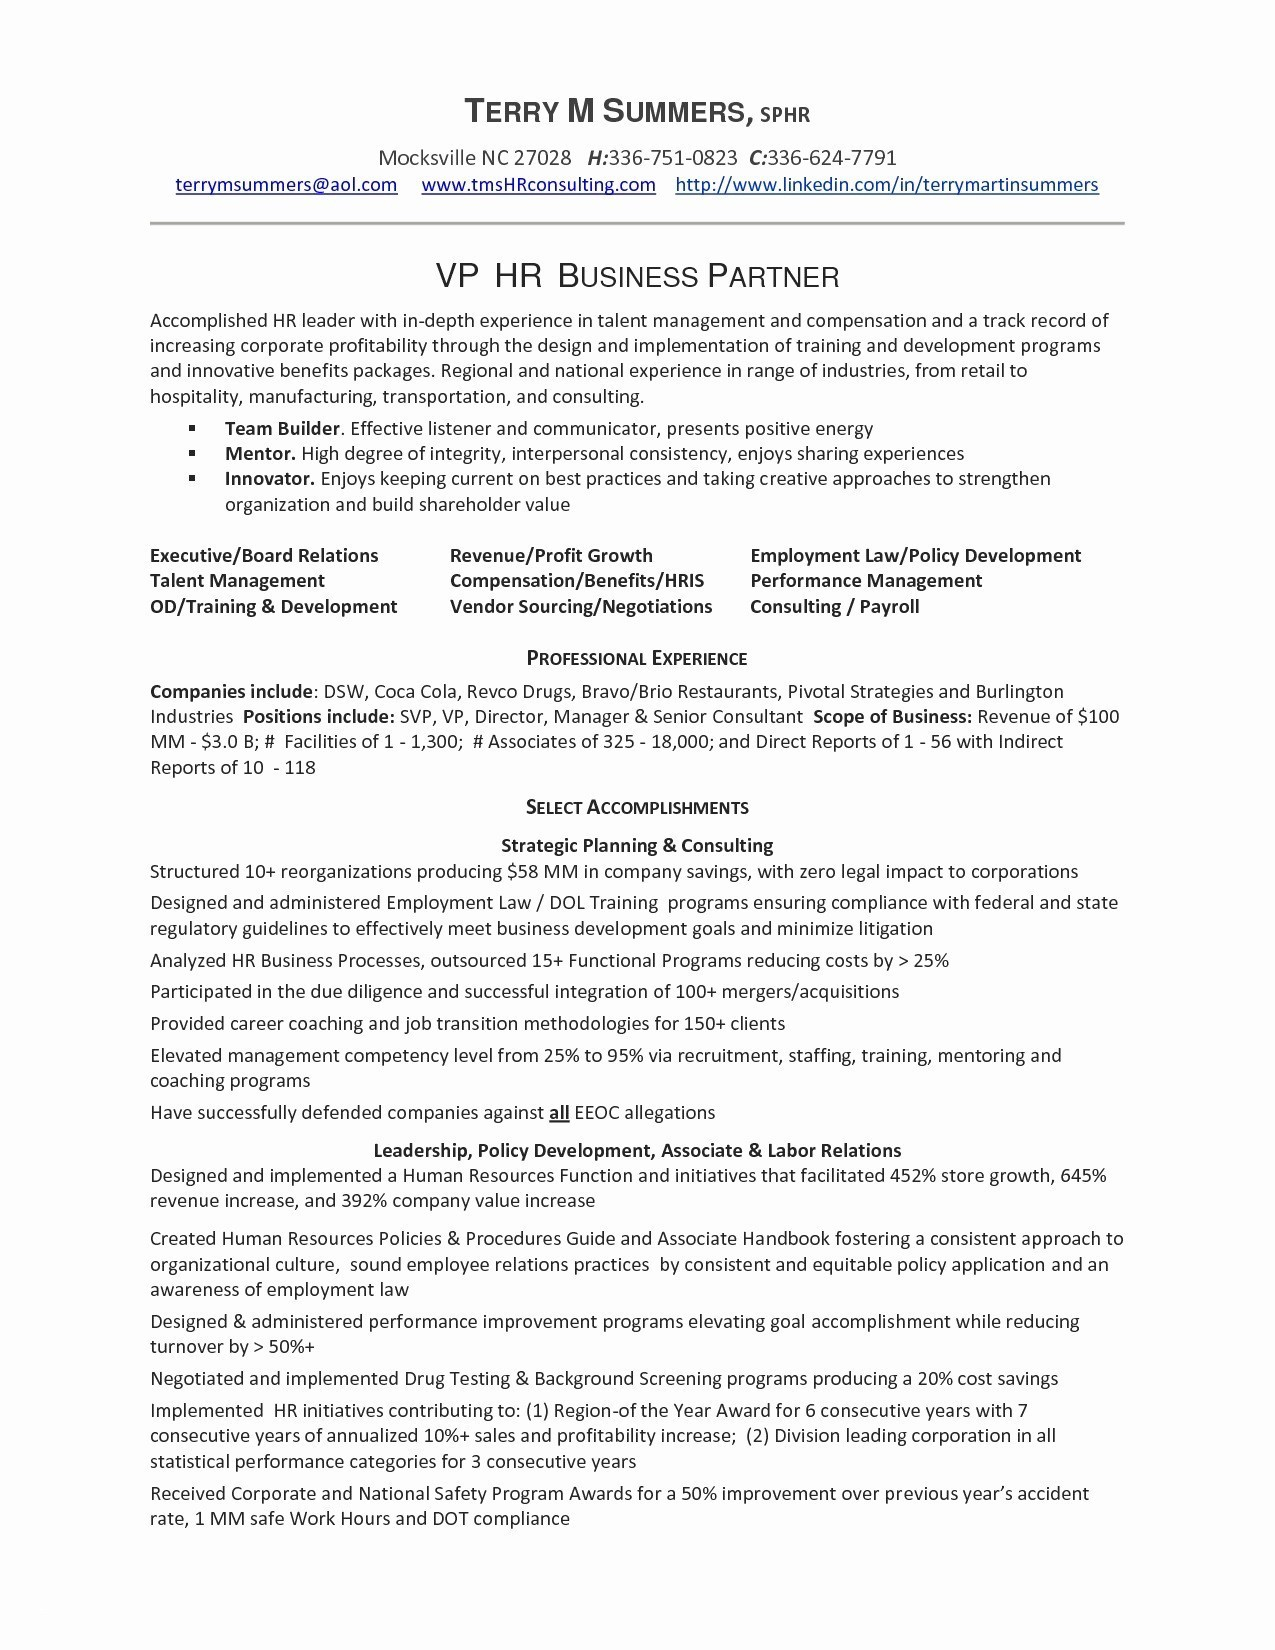 Social Work Resume Template - social Worker Resume Samples Valid social Work Resume Examples